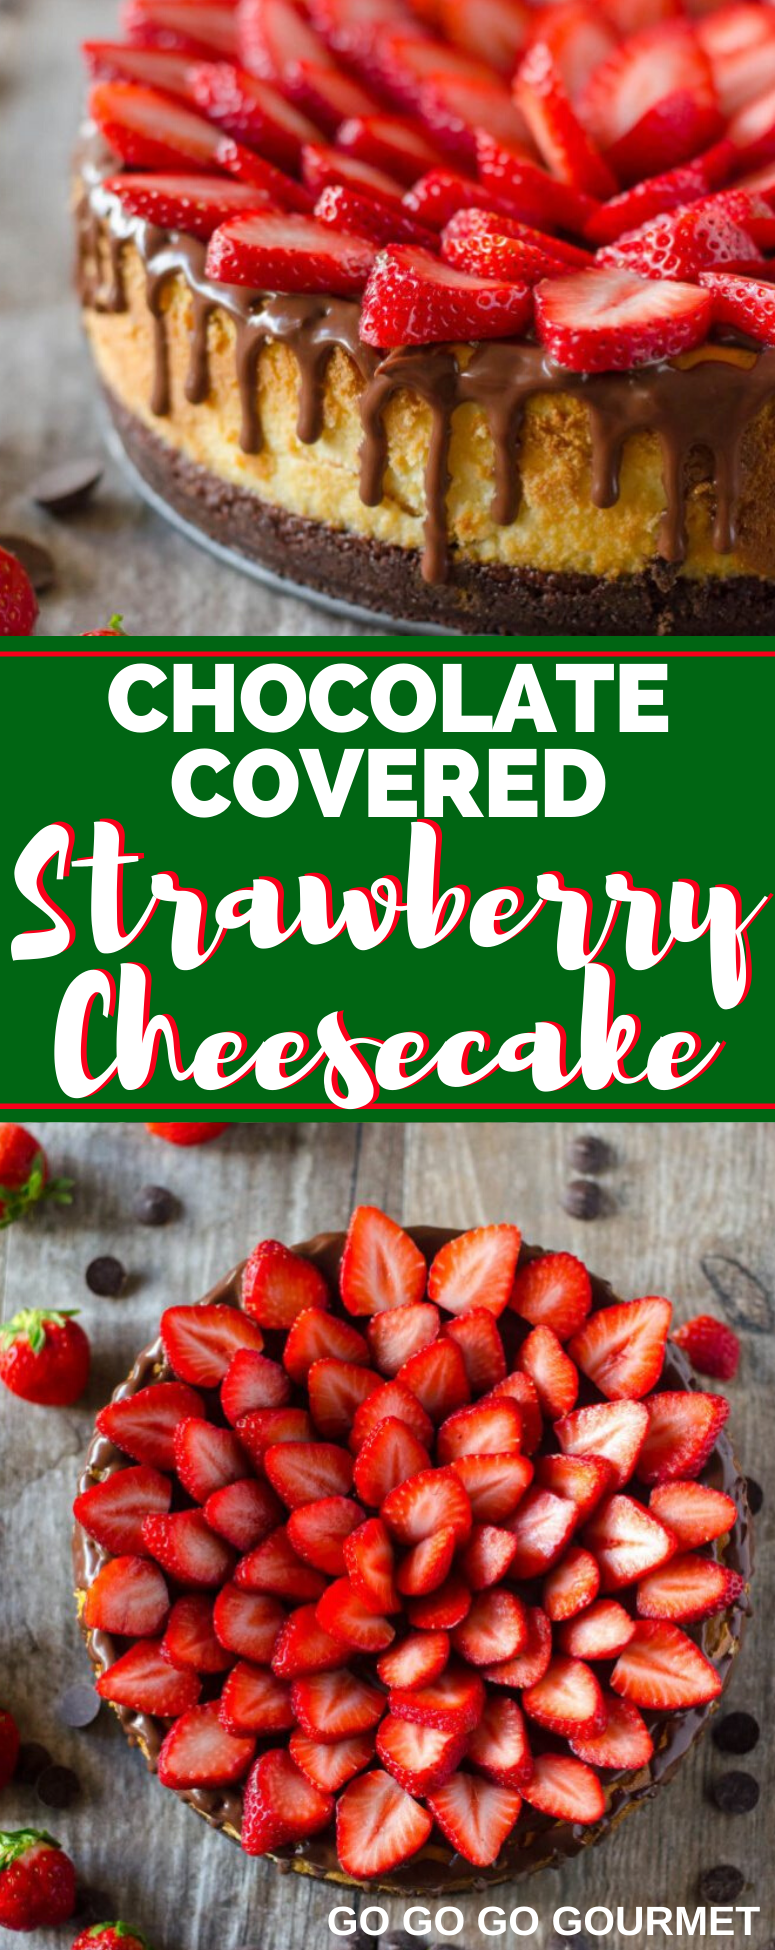 This Chocolate Covered Strawberry Cheesecake recipe is elegant yet super easy to make! With a chocolate graham cracker crust, it's topped with a layer of chocolate ganache, my new favorite cheesecake filling, then topped with more chocolate ganache and succulent strawberries. #gogogogourmet #chocolatecoveredstrawberrycheesecake #cheesecakerecipes #chocolatecheesecake #strawberrycheesecake via @gogogogourmet